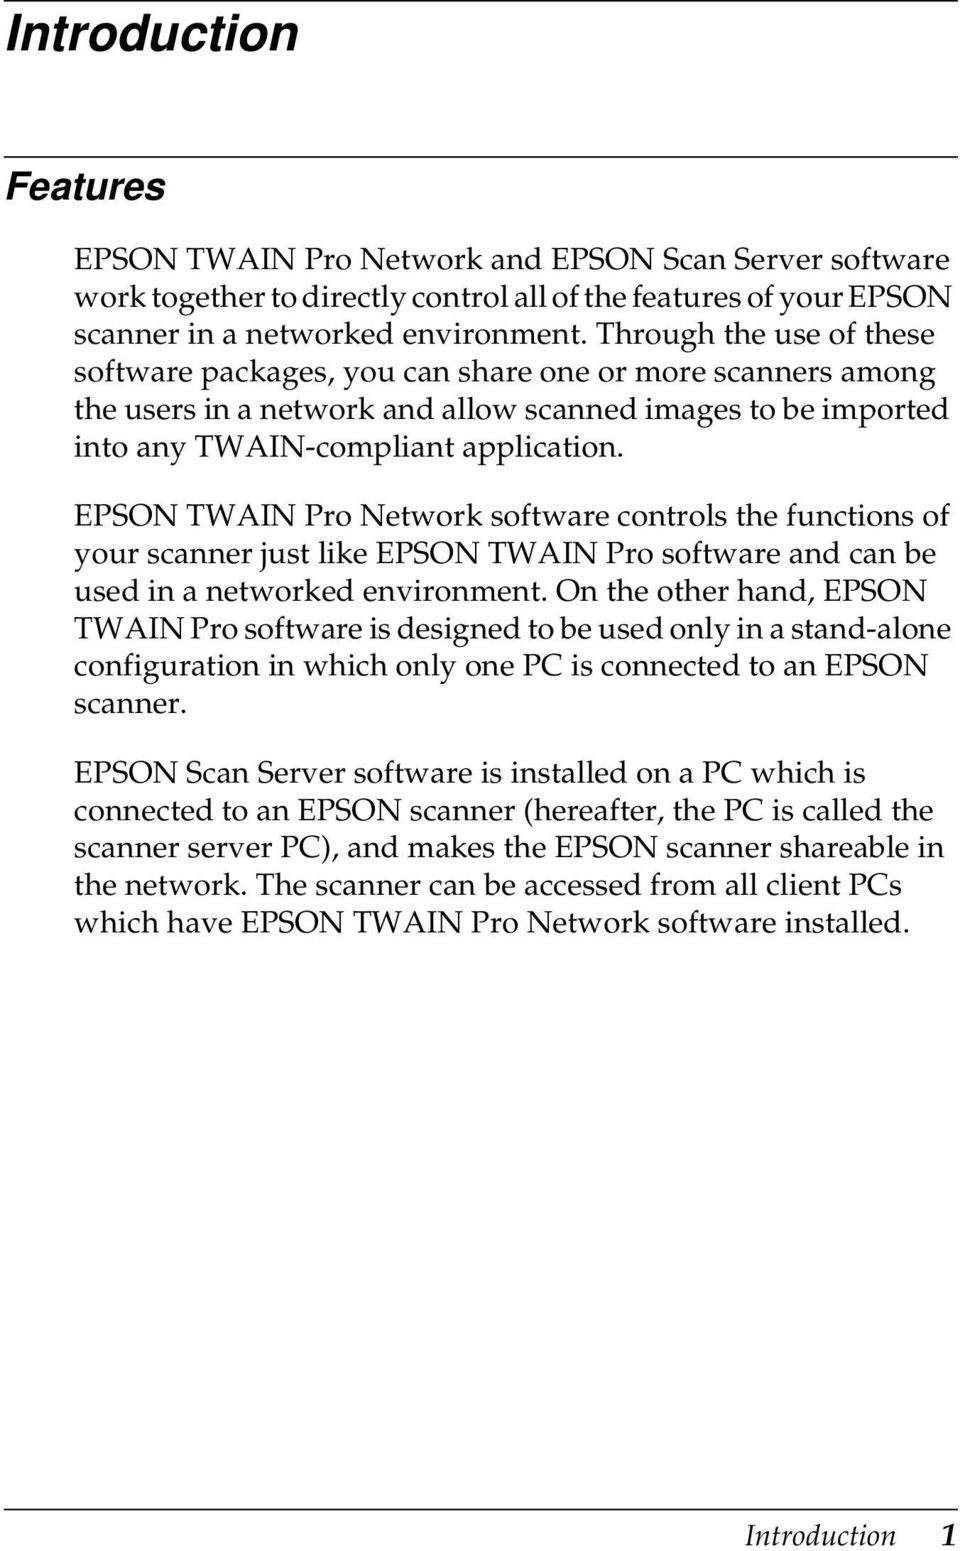 EPSON TWAIN Pro Network software controls the functions of your scanner just like EPSON TWAIN Pro software and can be used in a networked environment.